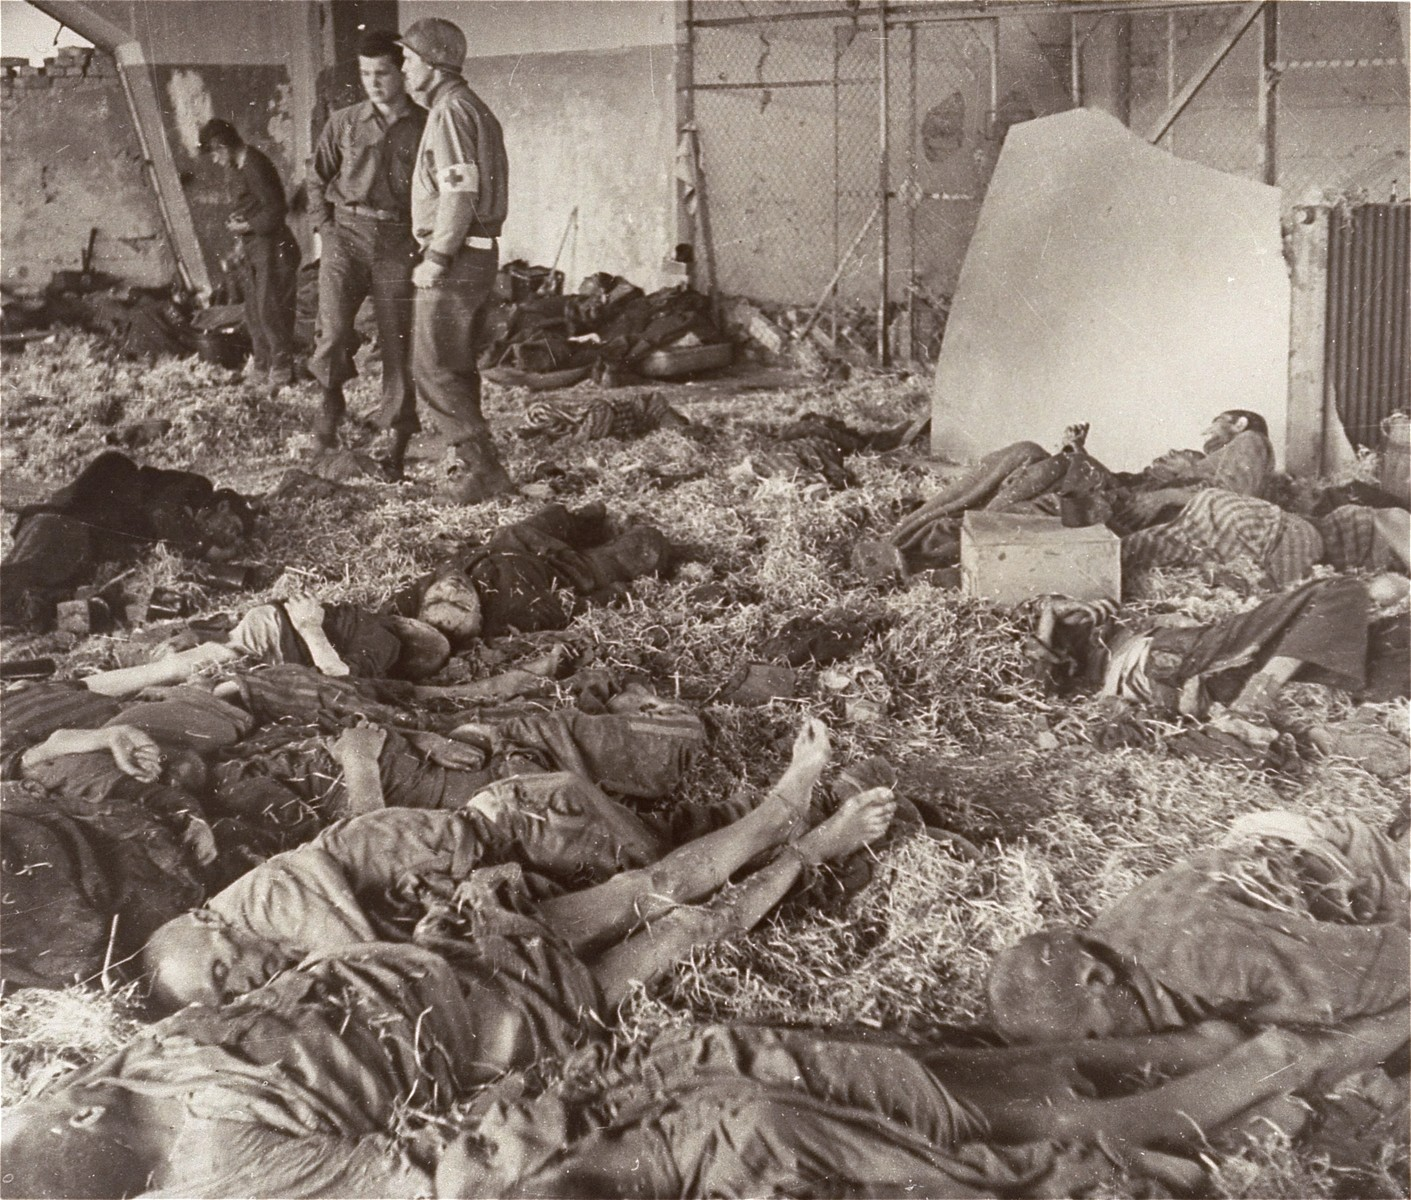 An American soldier and medical officer view the bodies of prisoners lying on the ground in a barracks in the Nordhausen concentration camp.